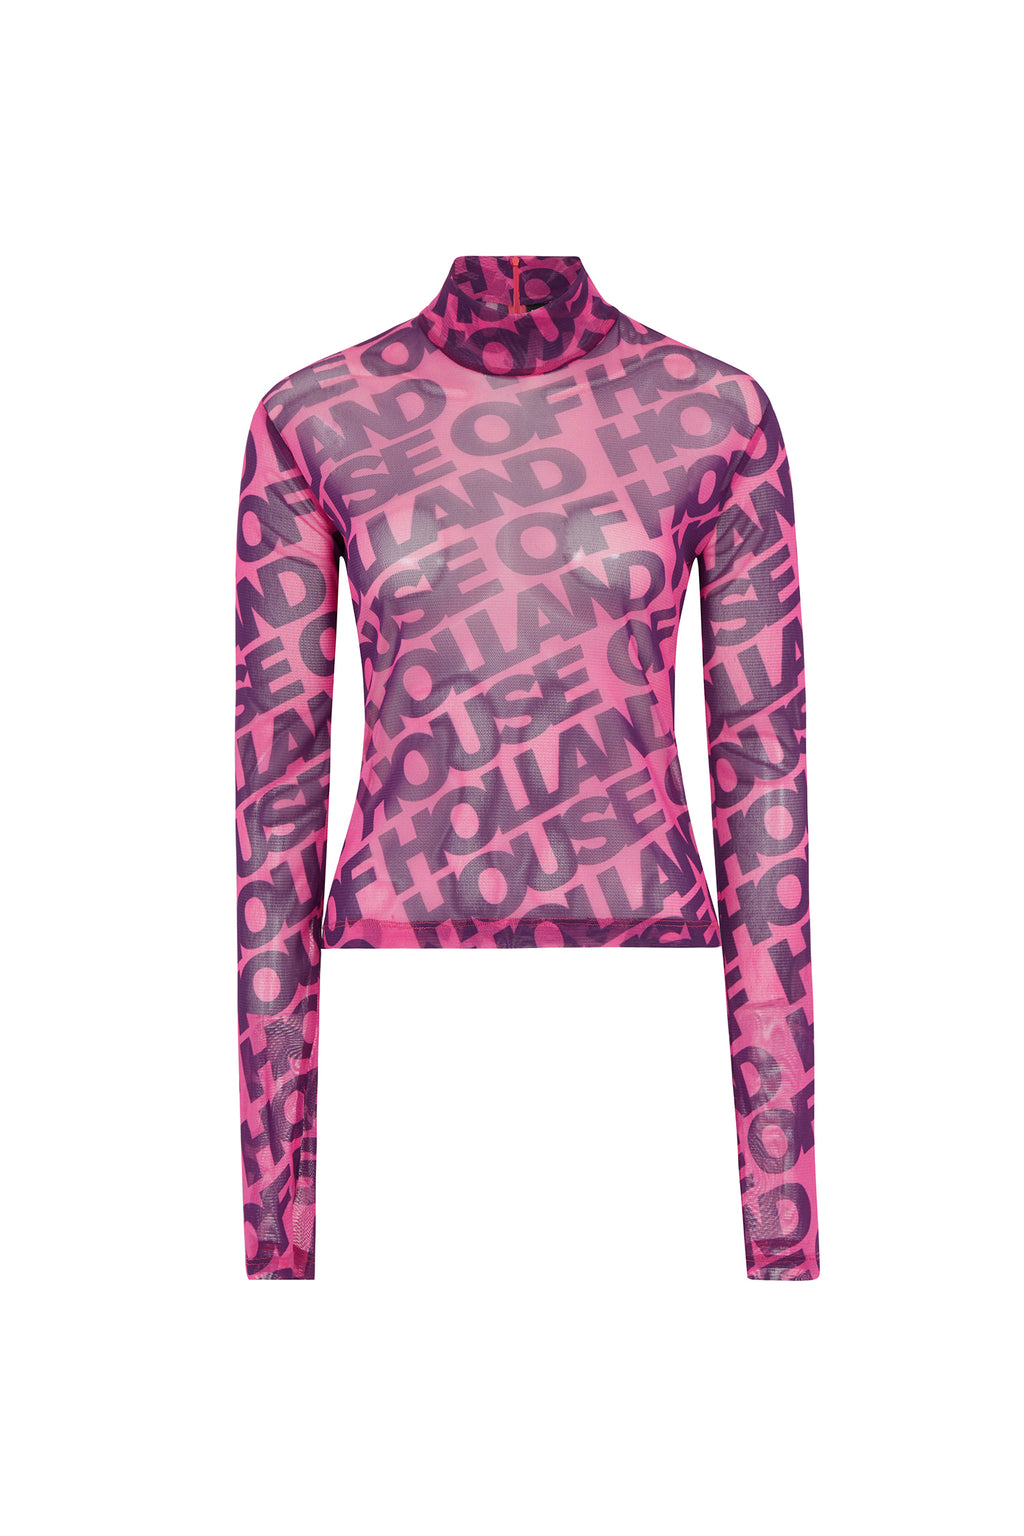 Printed 'House of Holland' Long Sleeve Mesh Top (Vivid Pink) by House of Holland